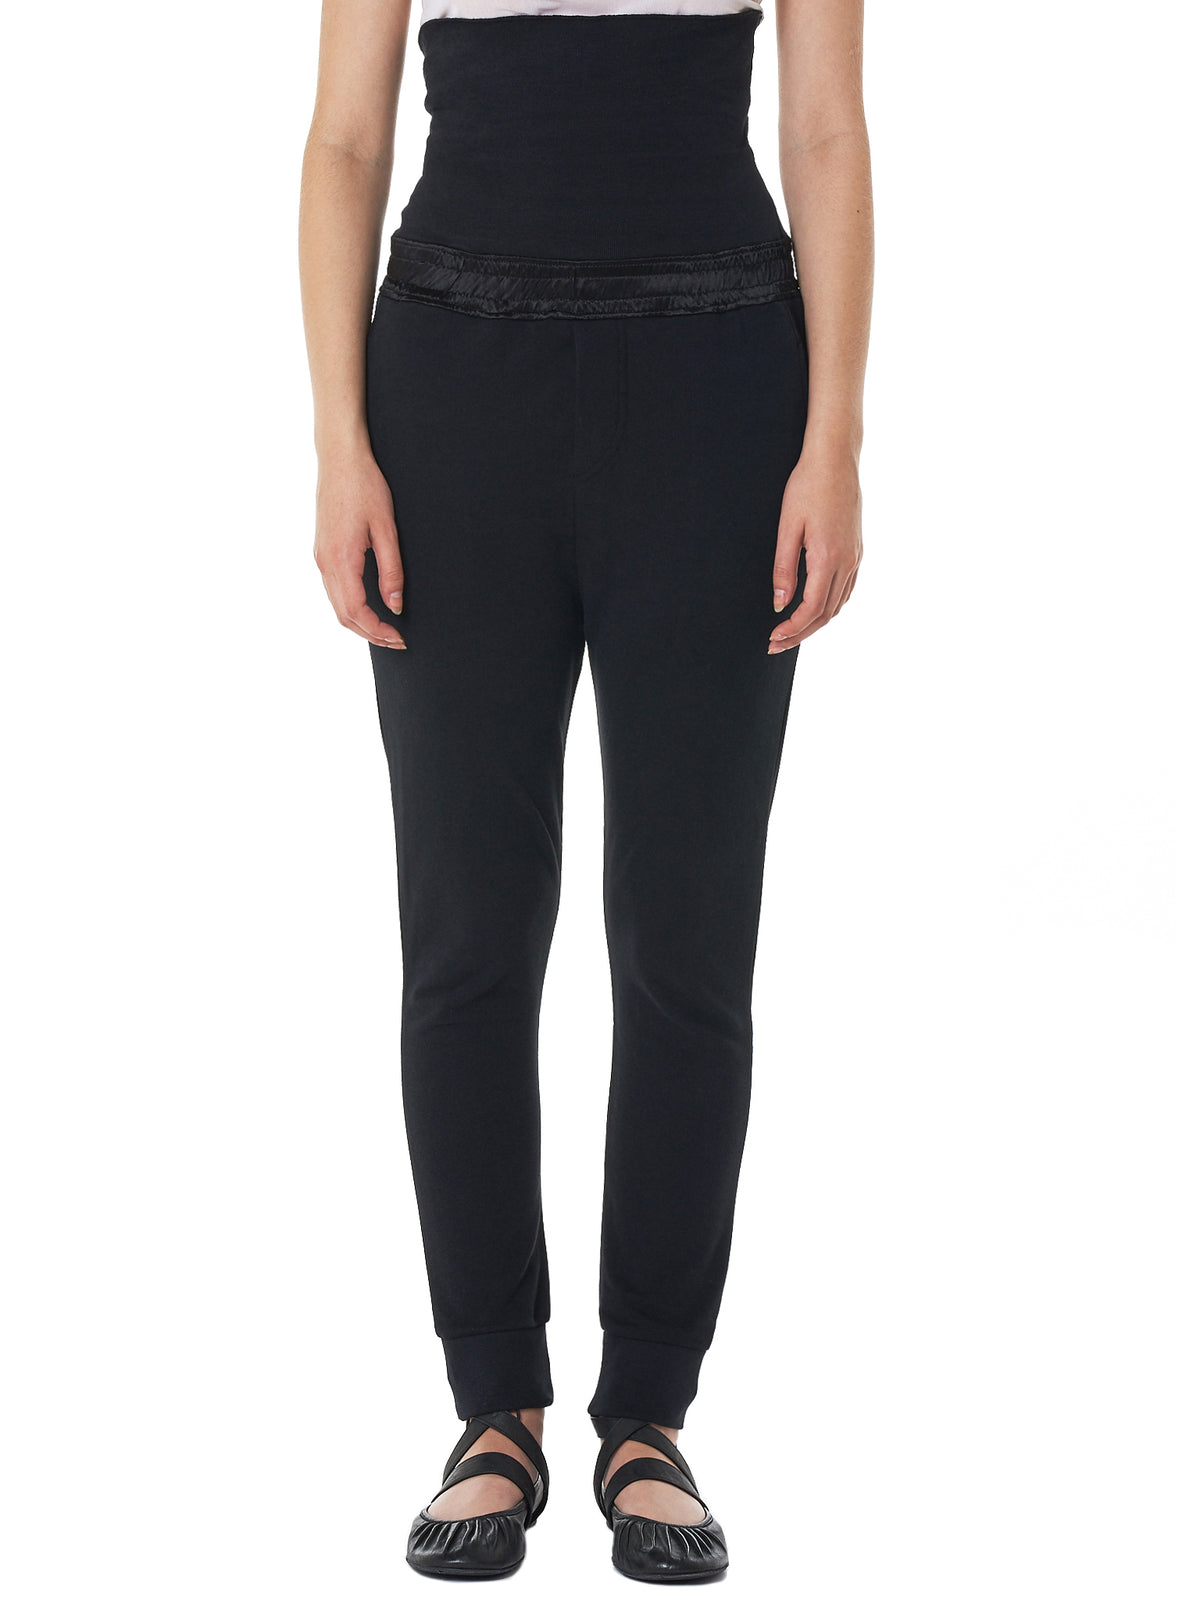 High-Waisted Knit Joggers (1802-2490-225-099)